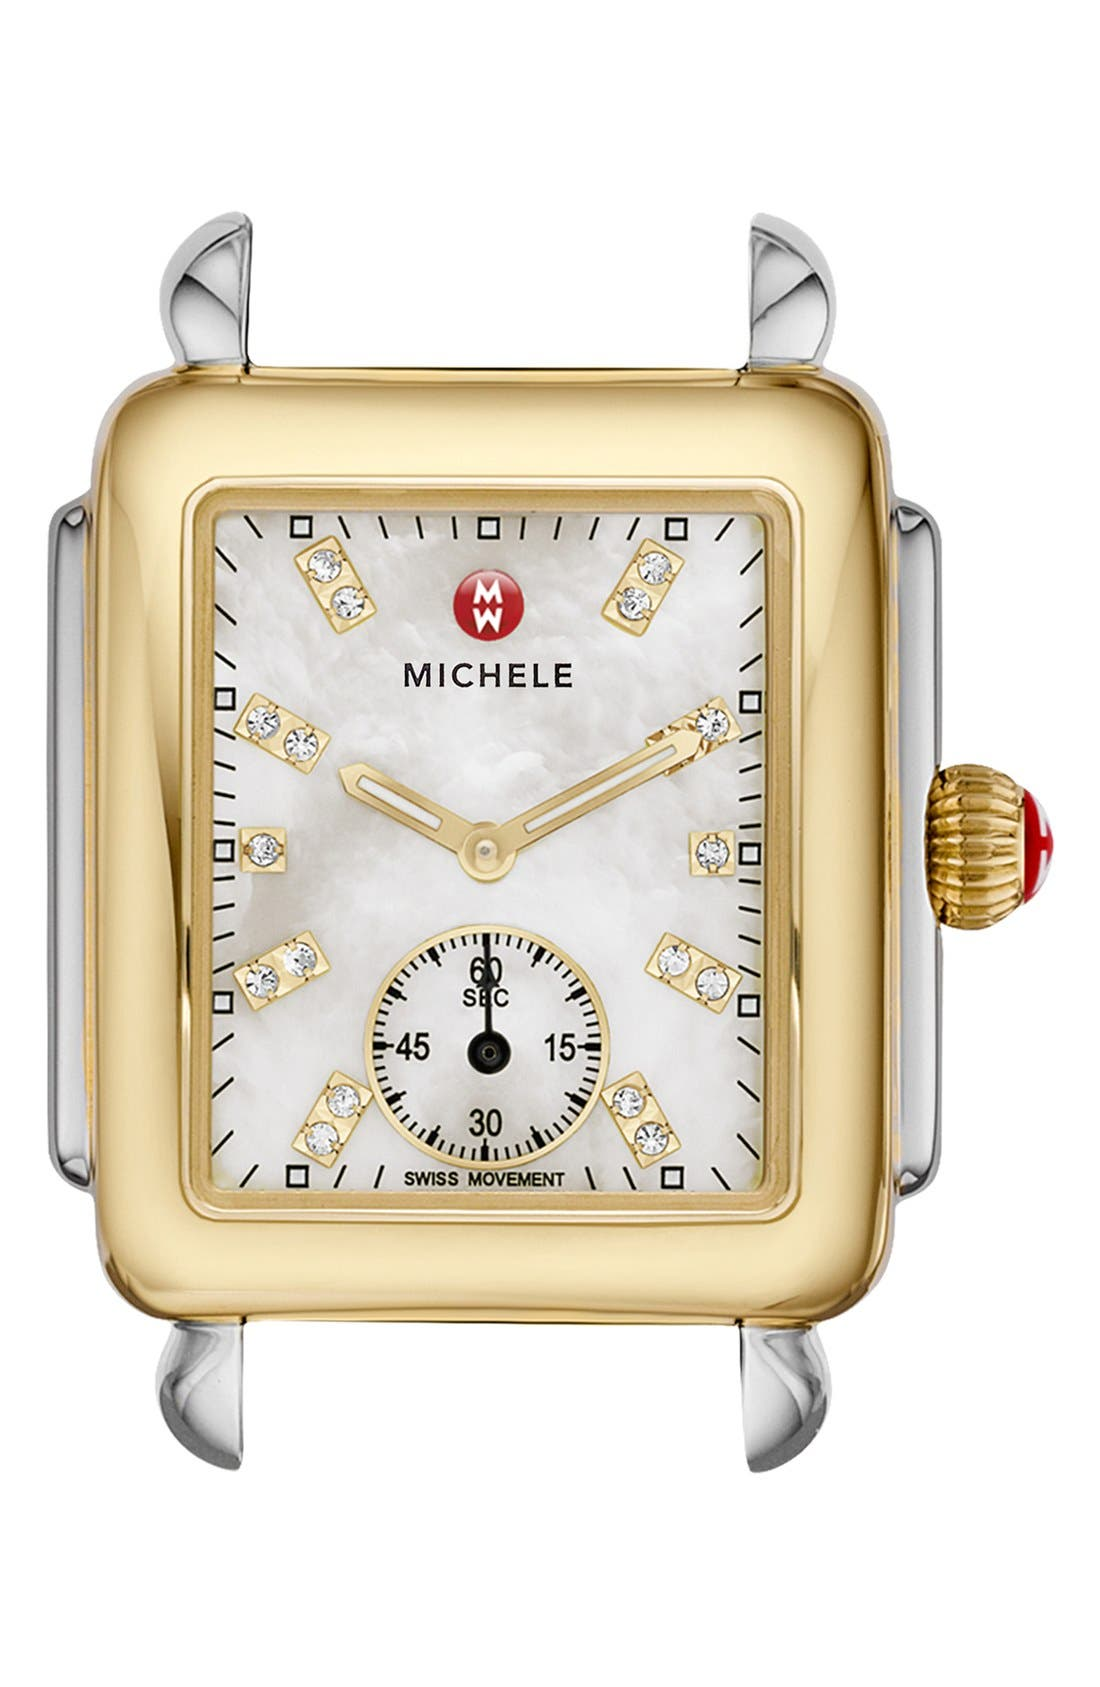 Main Image - MICHELE Deco 16 Diamond Dial Two-Tone Watch Case, 29mm x 31mm